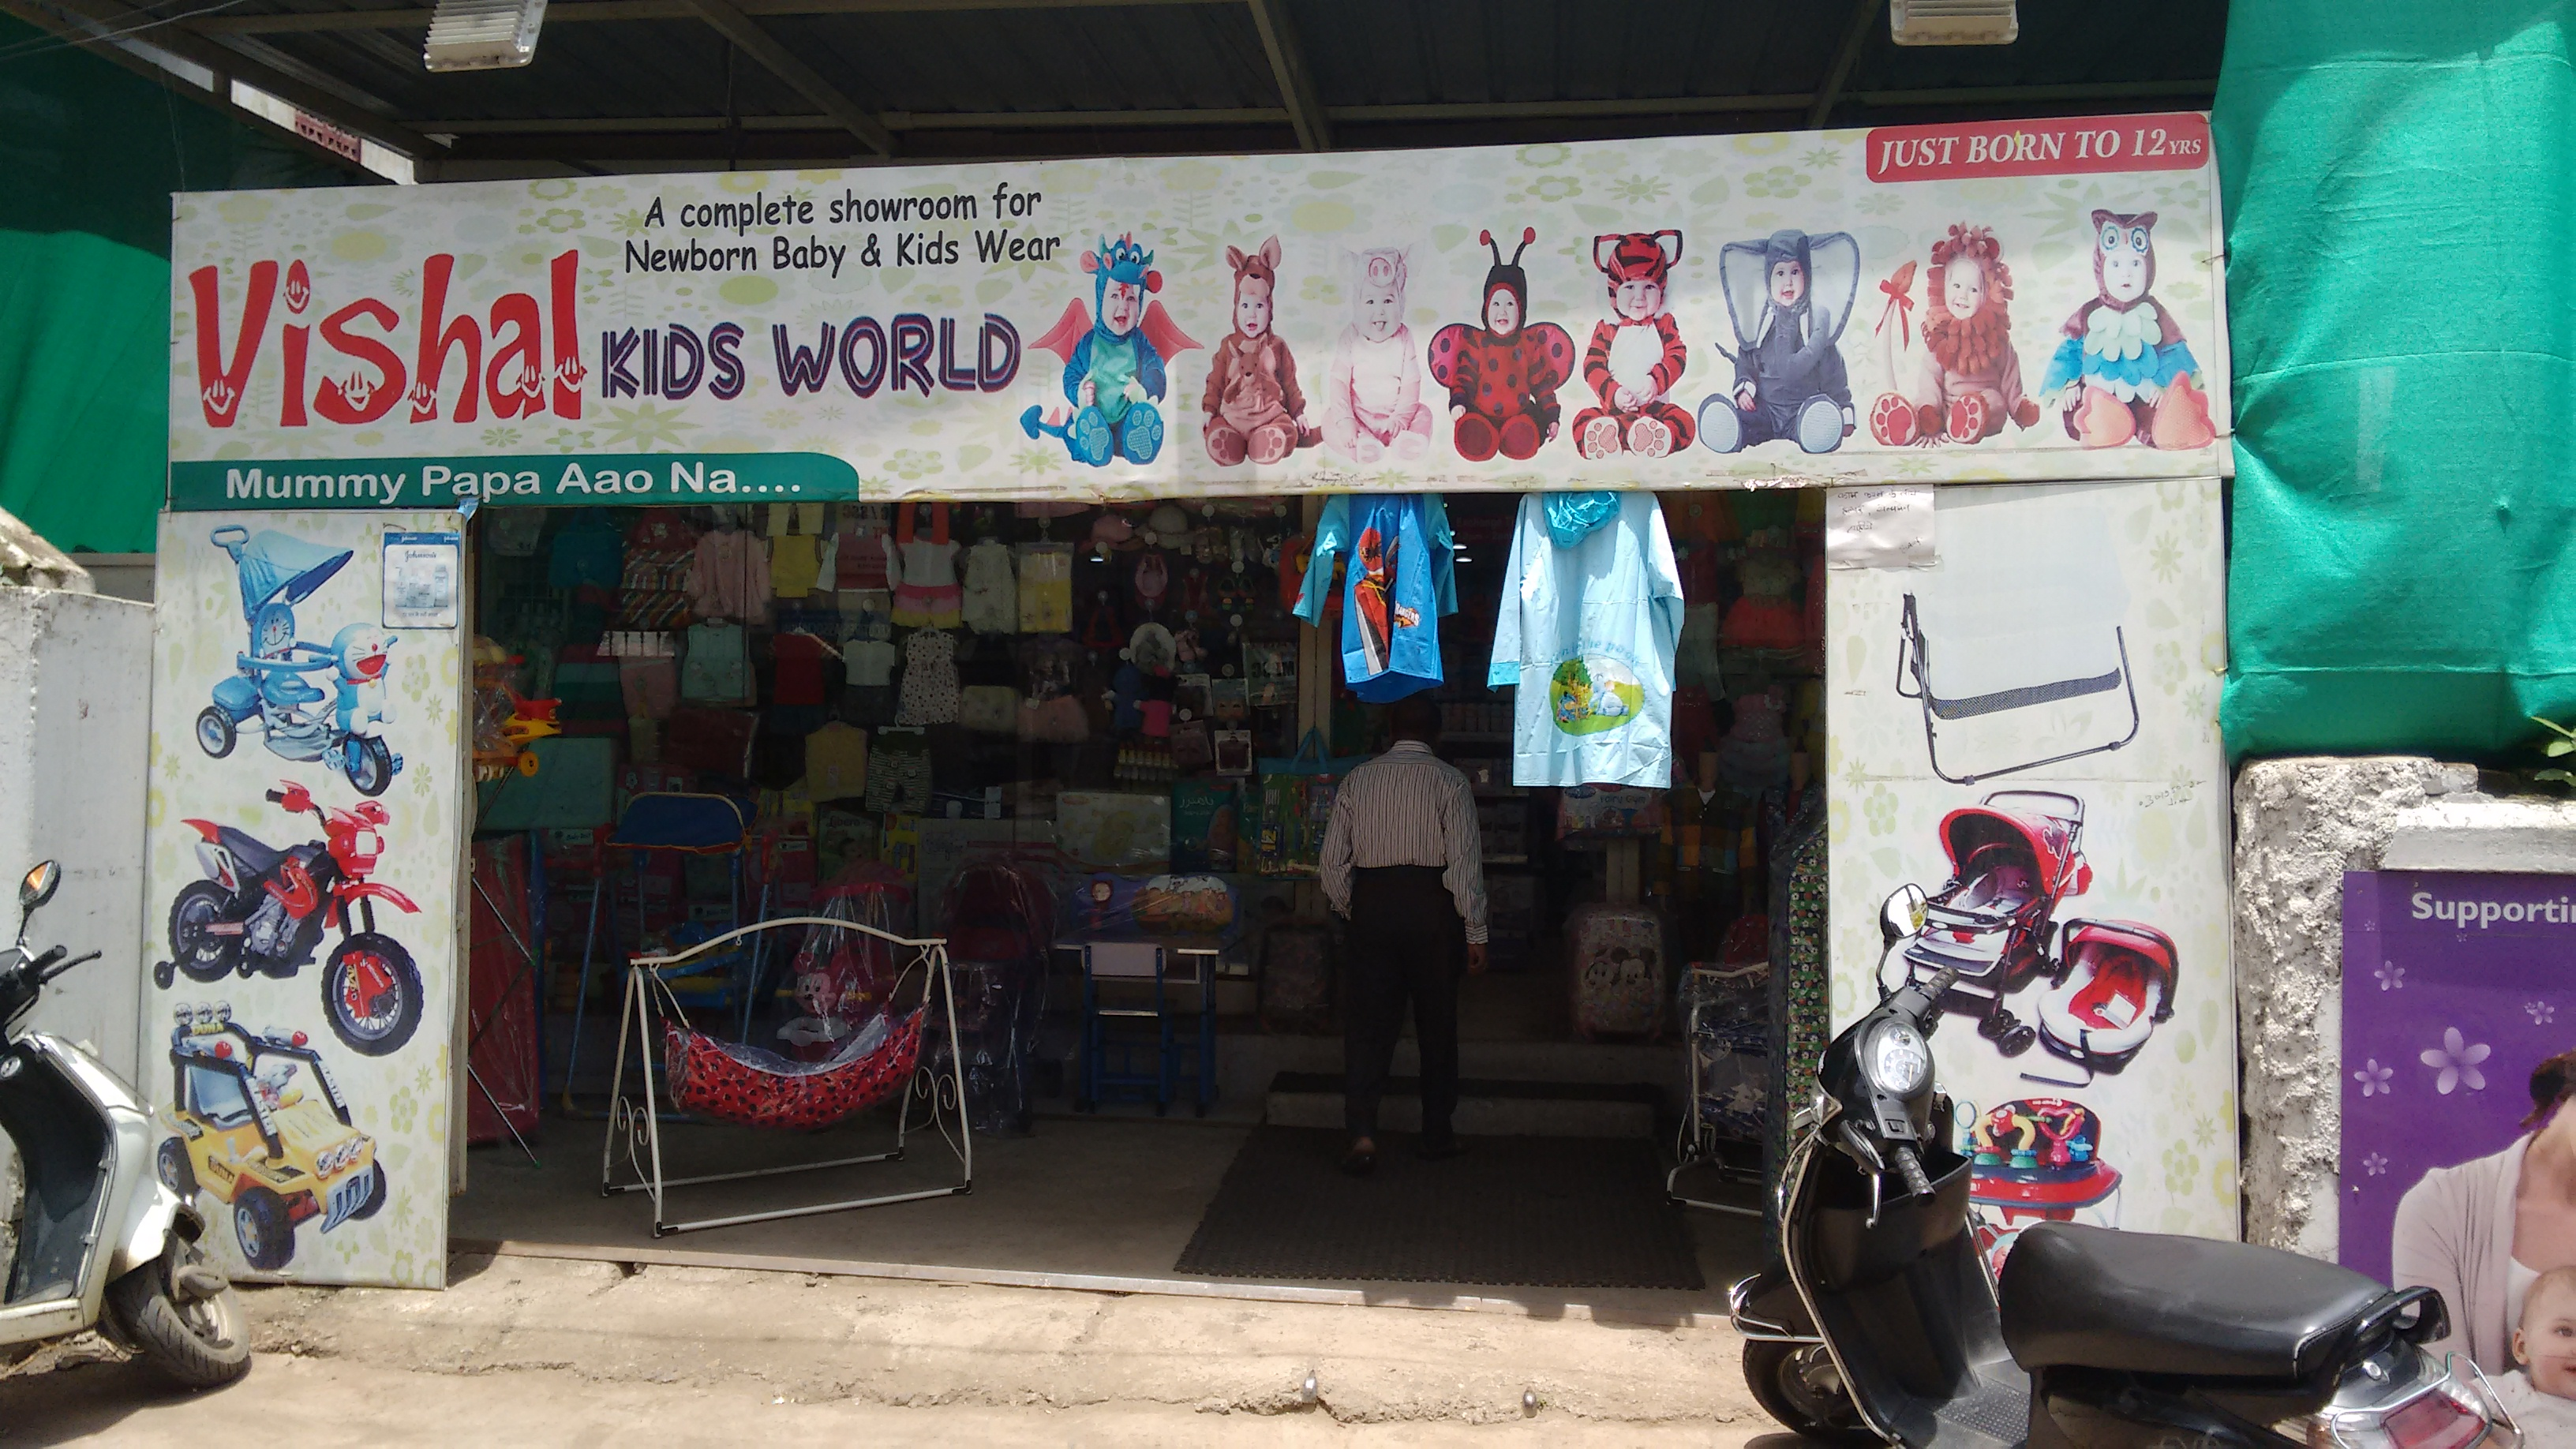 Vishal Kids World